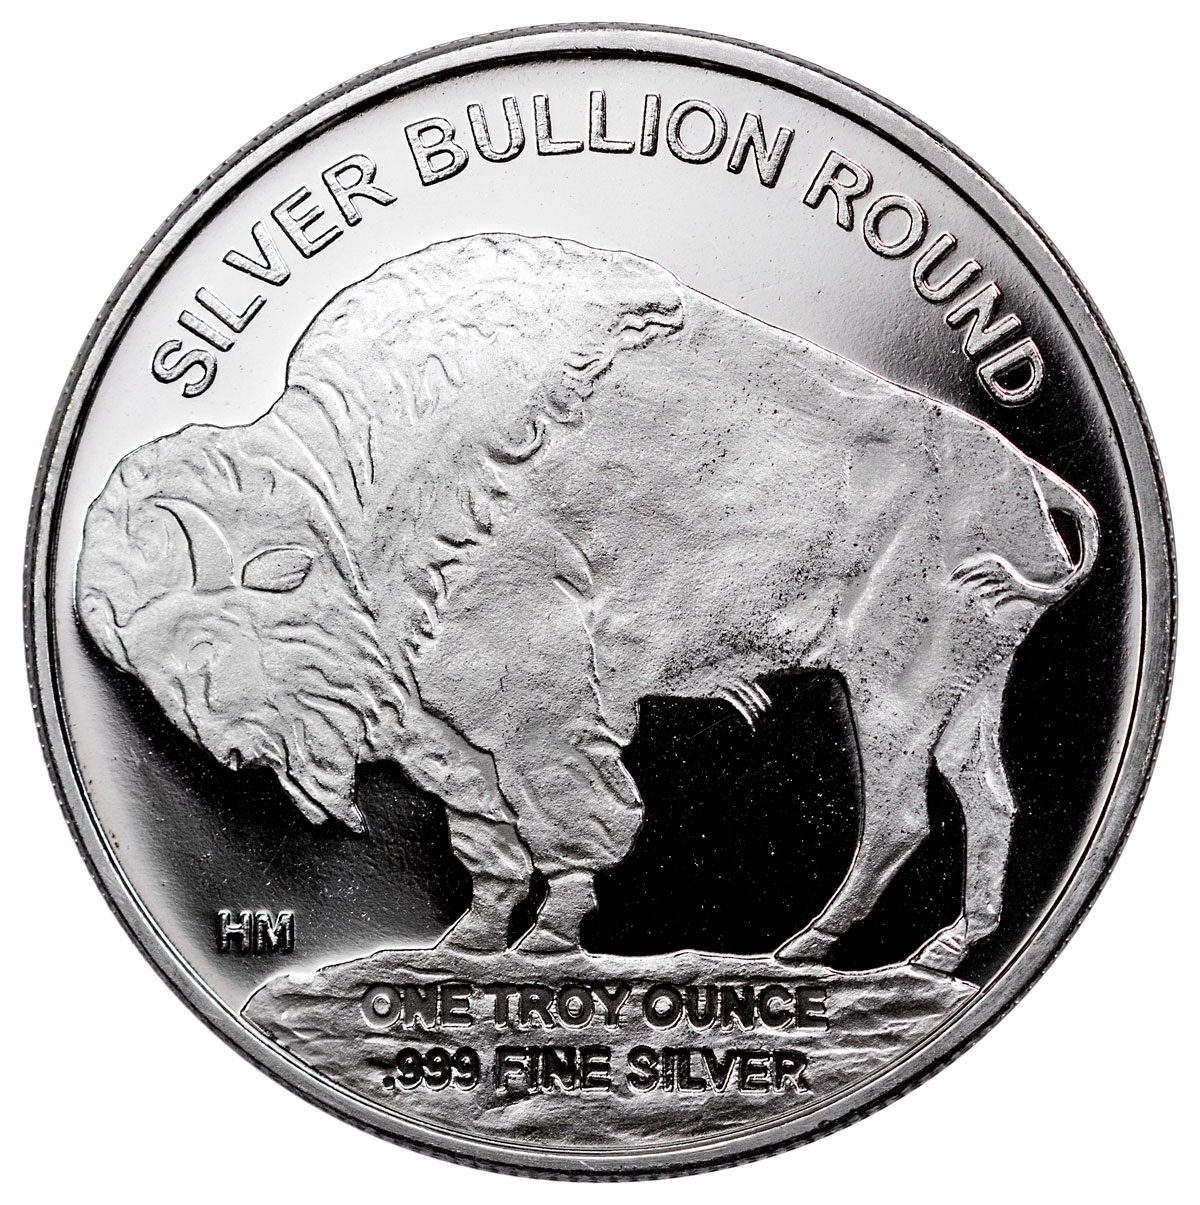 2018 Highland Mint Buffalo Nickel Design 1 Oz Silver Round